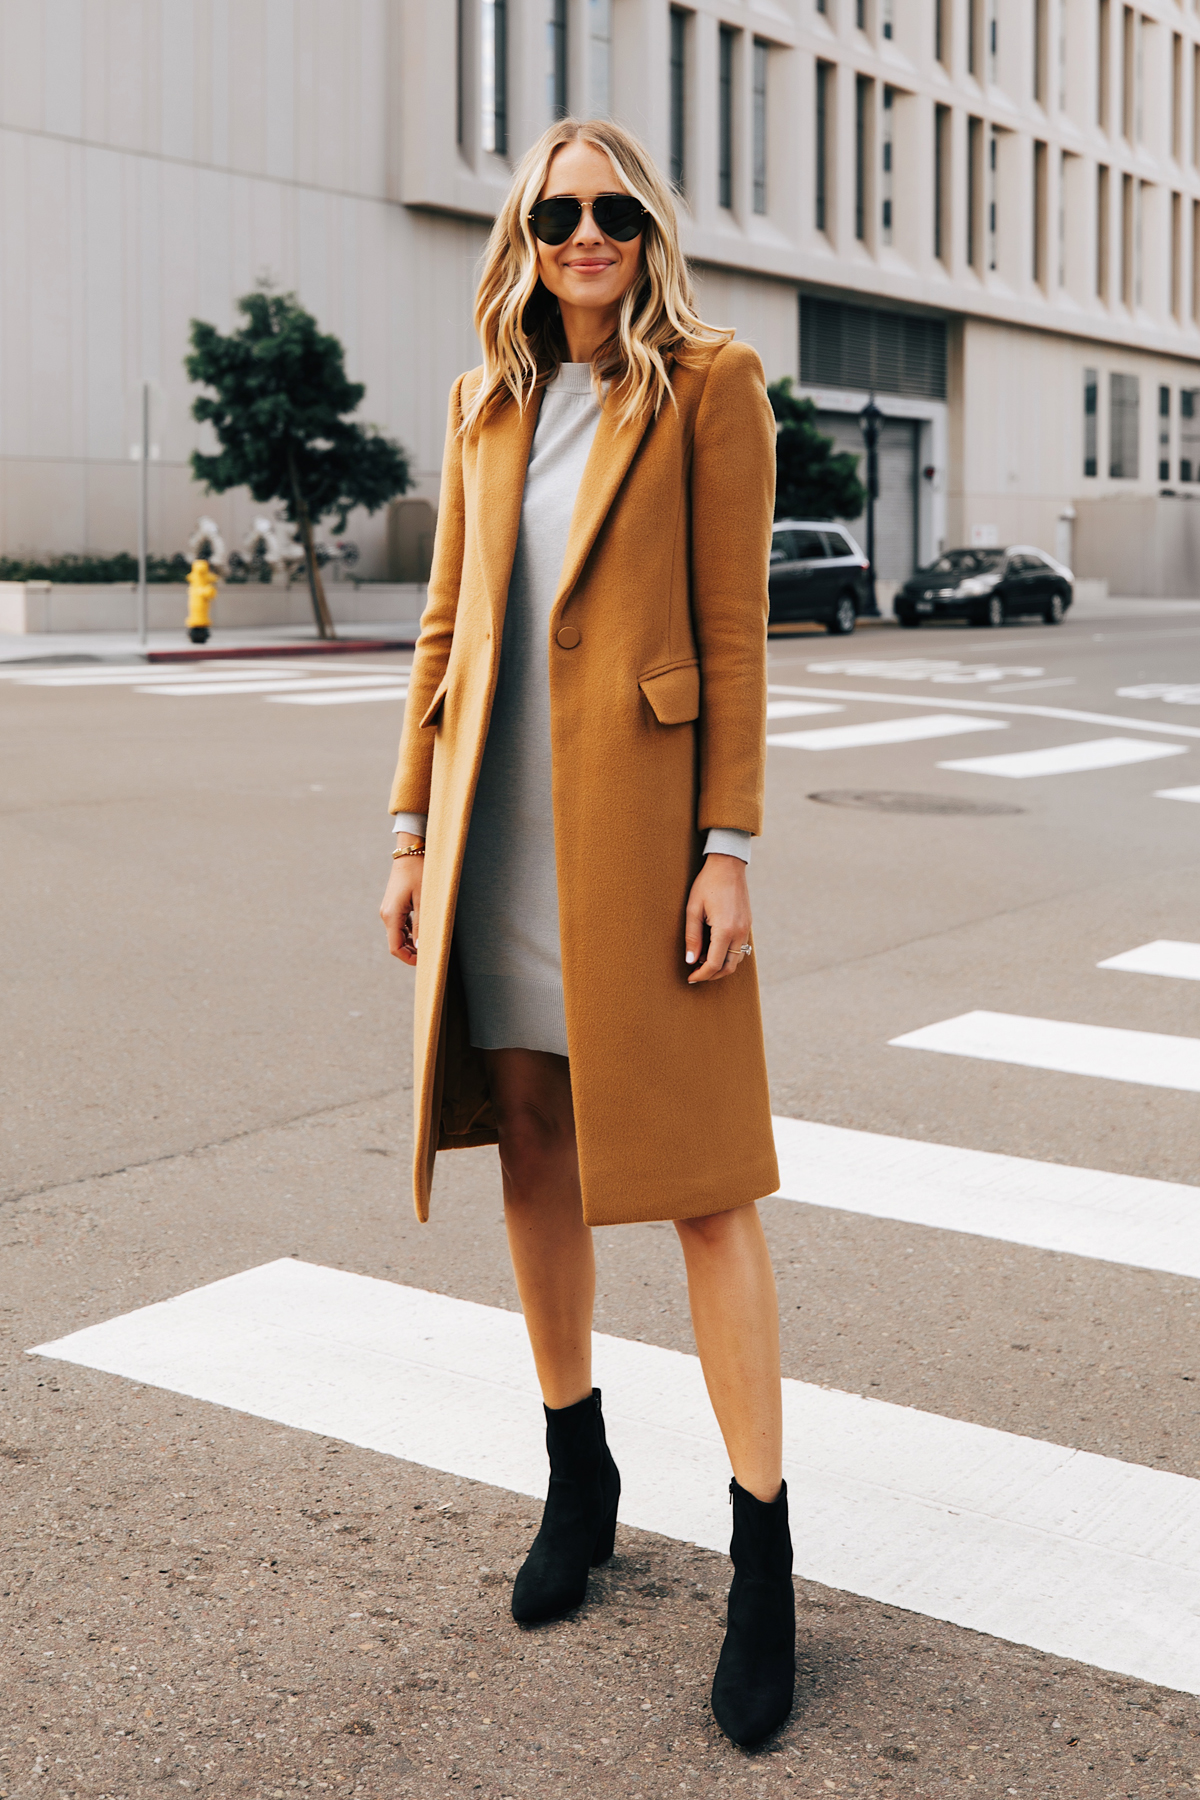 Fashion Jackson Wearing Club Monaco Camel Coat Grey Sweater Dress Black Booties 1